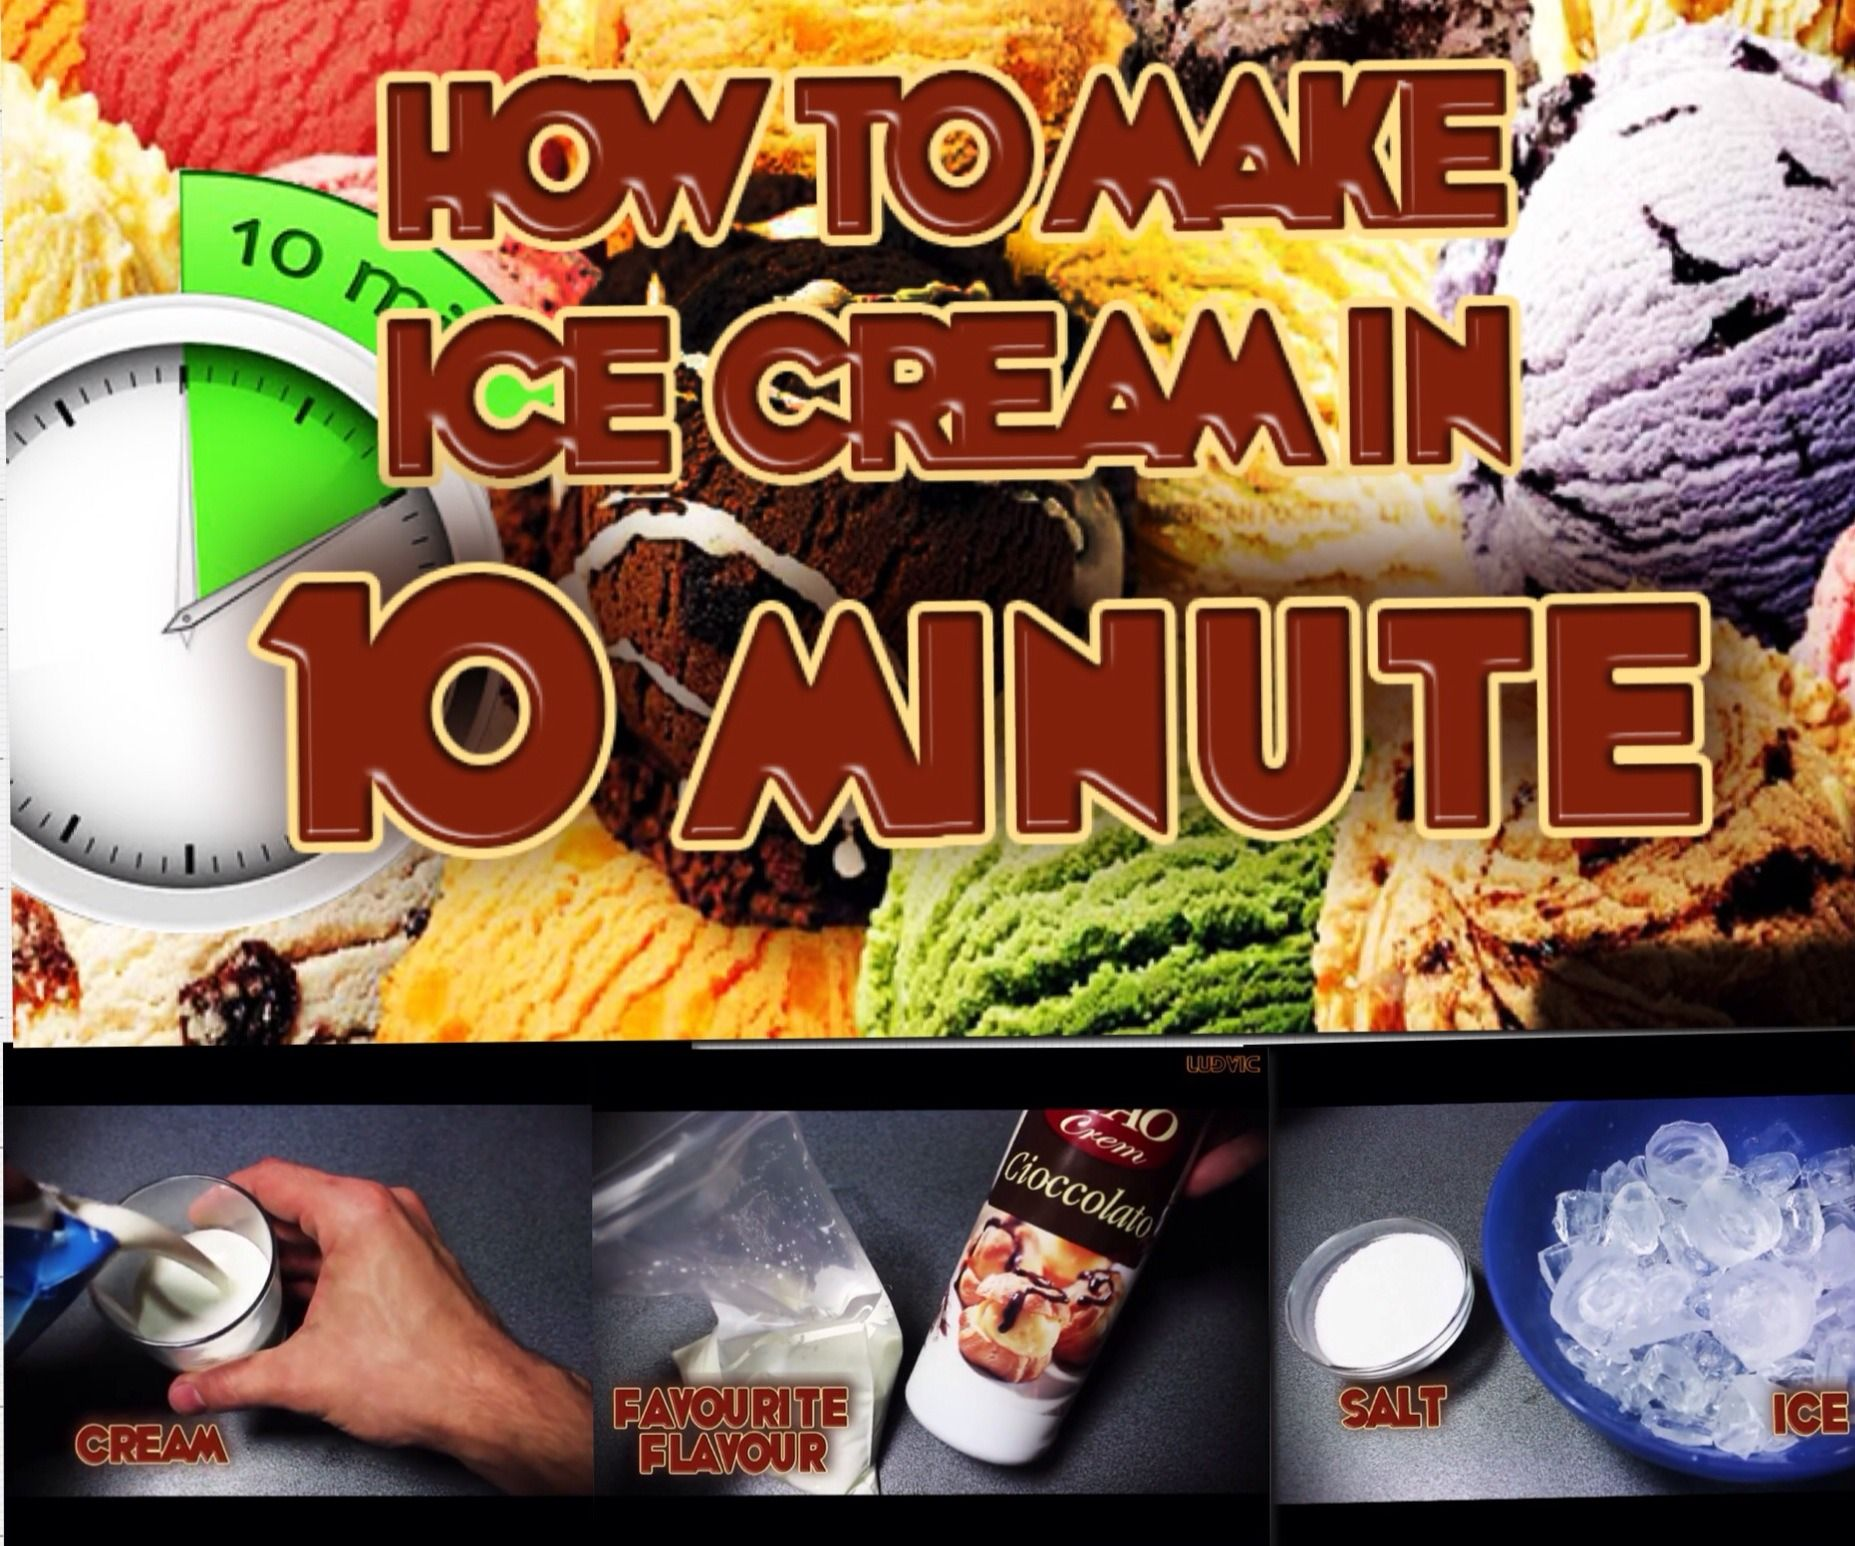 How To Make Ice Cream in 10 Minute